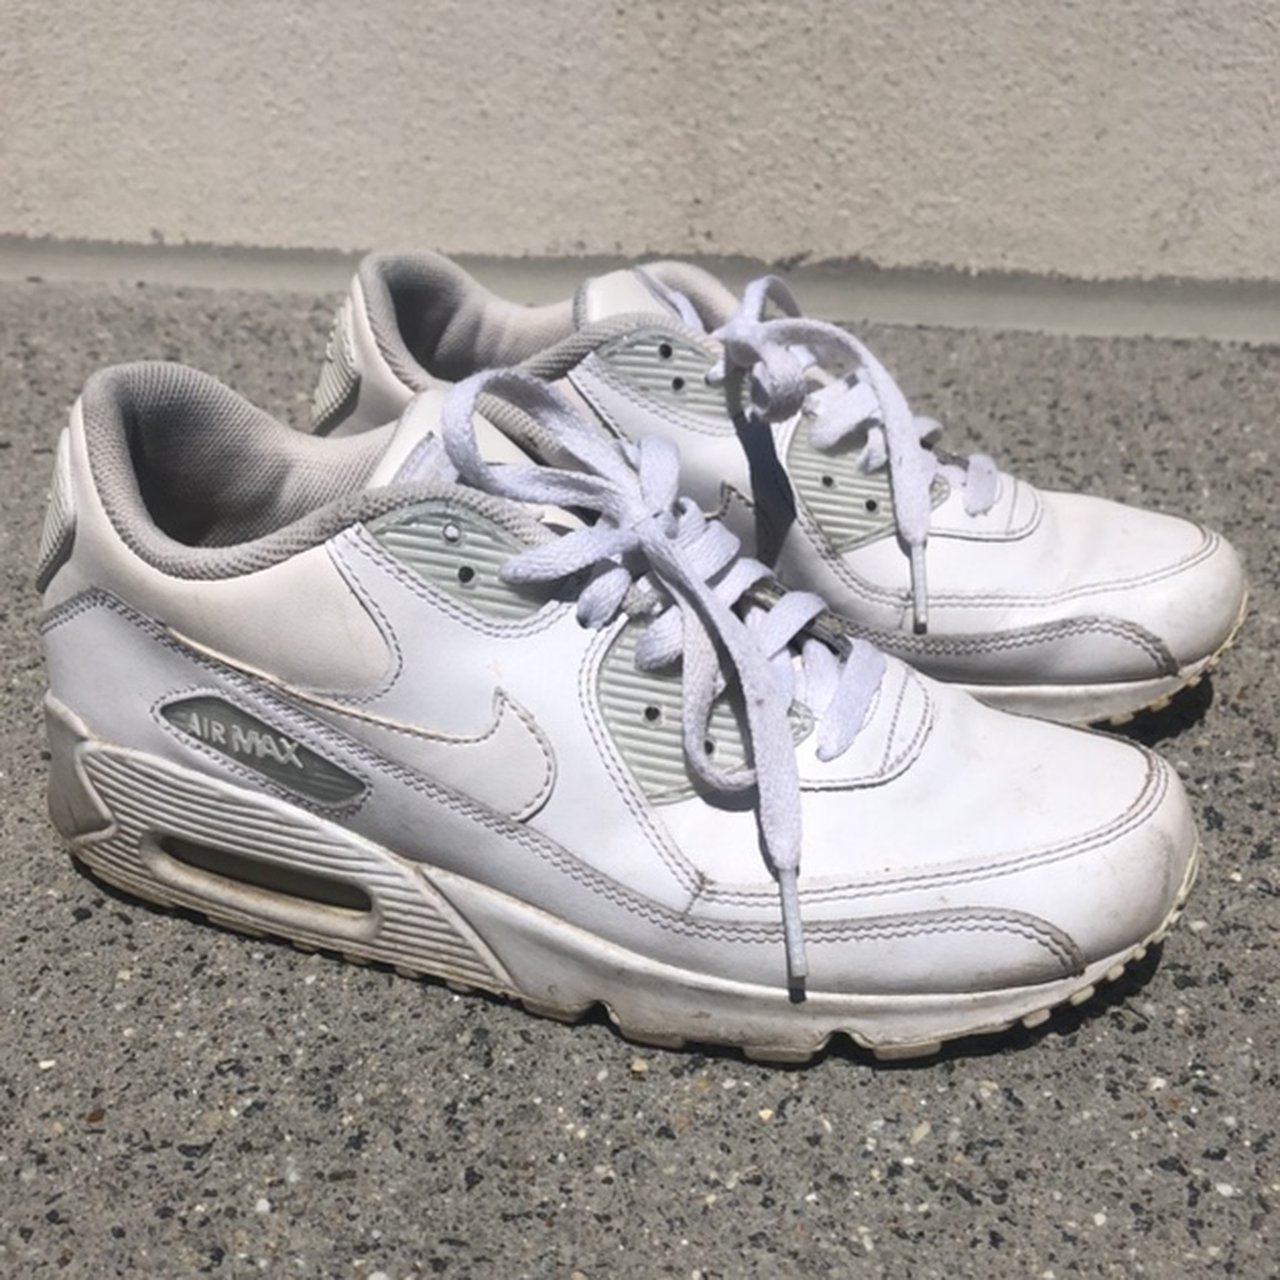 582e9c06c3 Nike Air Max 90s classic!!! sad these are not my size bc I - Depop